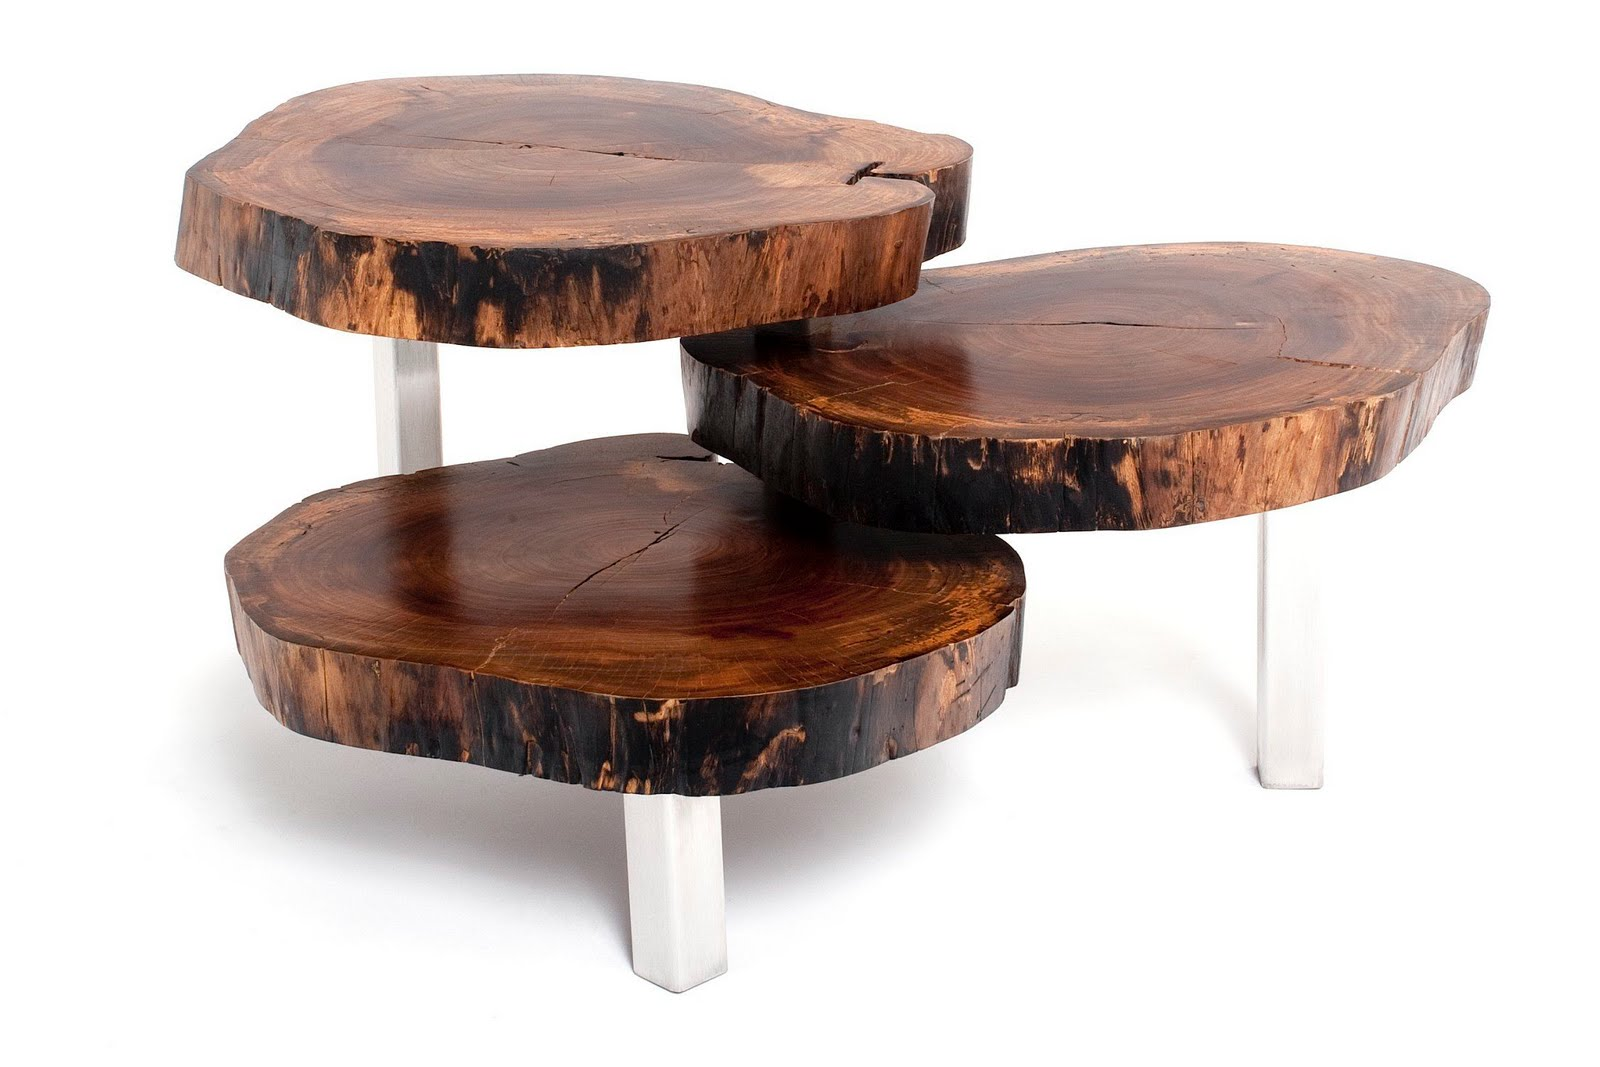 Wood Tables At The Galleria